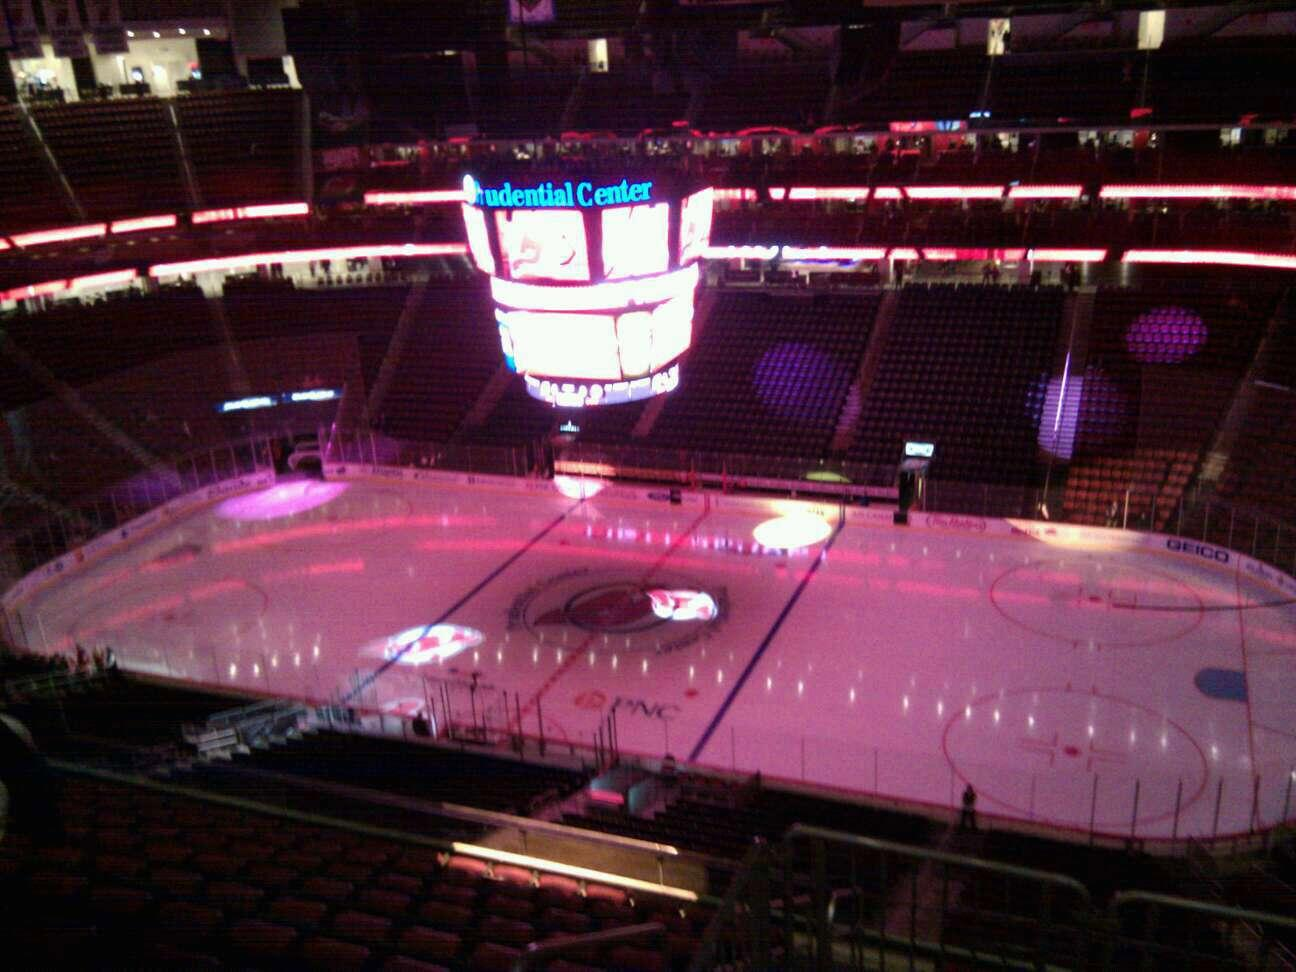 Prudential Center Section 231 Row 2 Seat 11